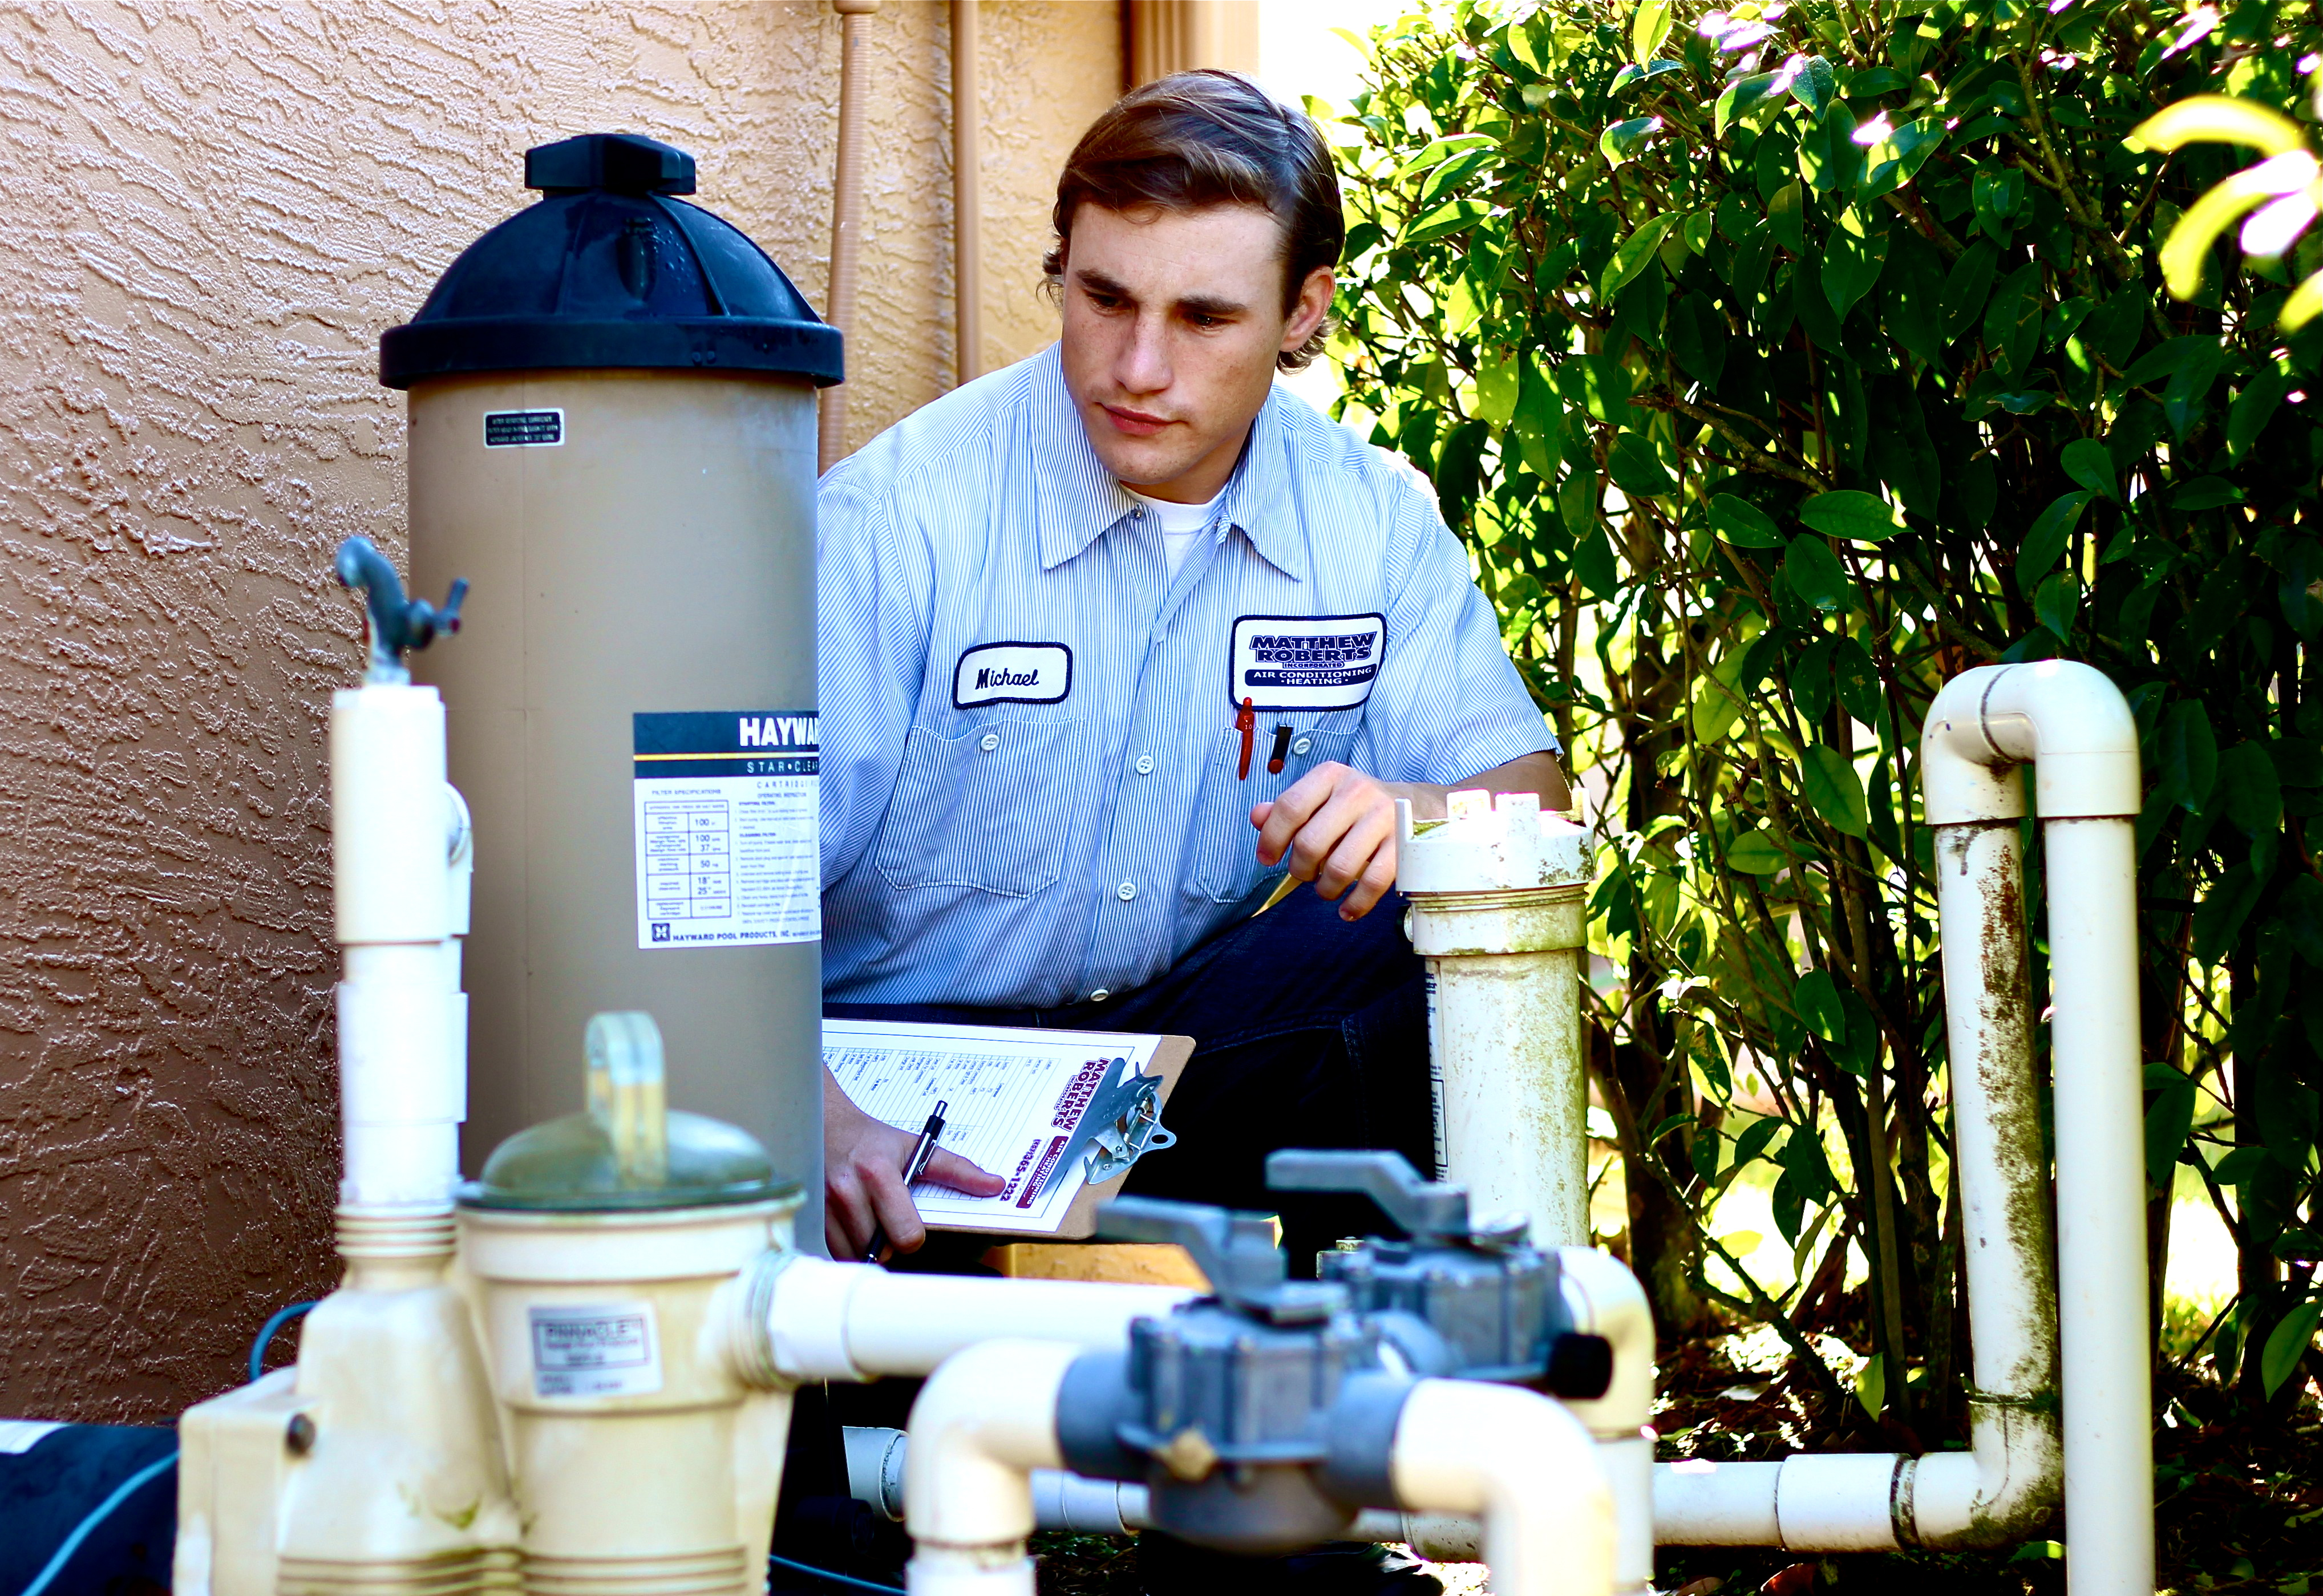 orlando quality pool heater repair and installation - Pool Heater Repair